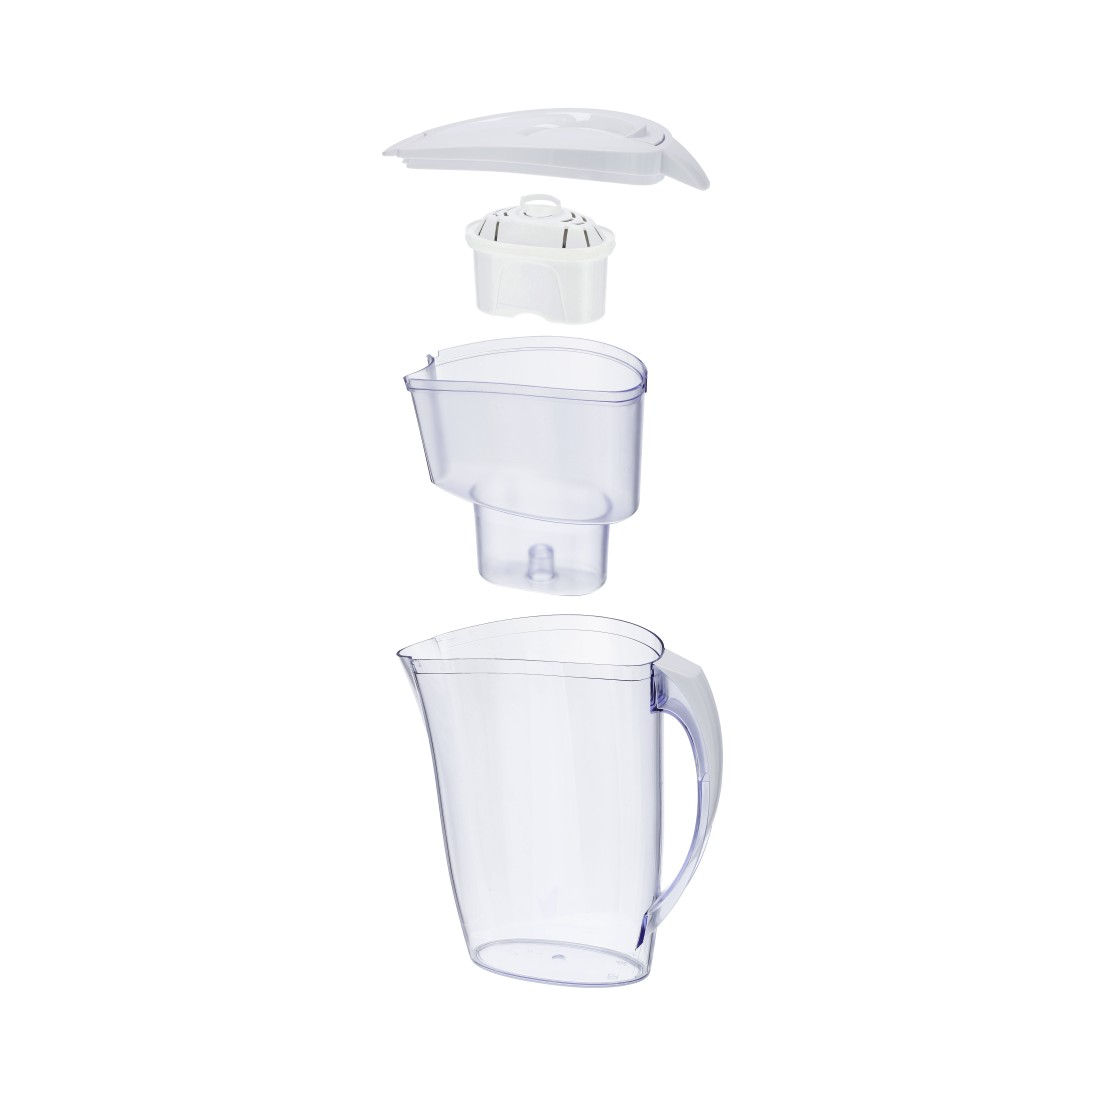 dex High-Res Detail - Xavax, Water Filter Jug with 2 Filter Cartridges, 2.4 l, white